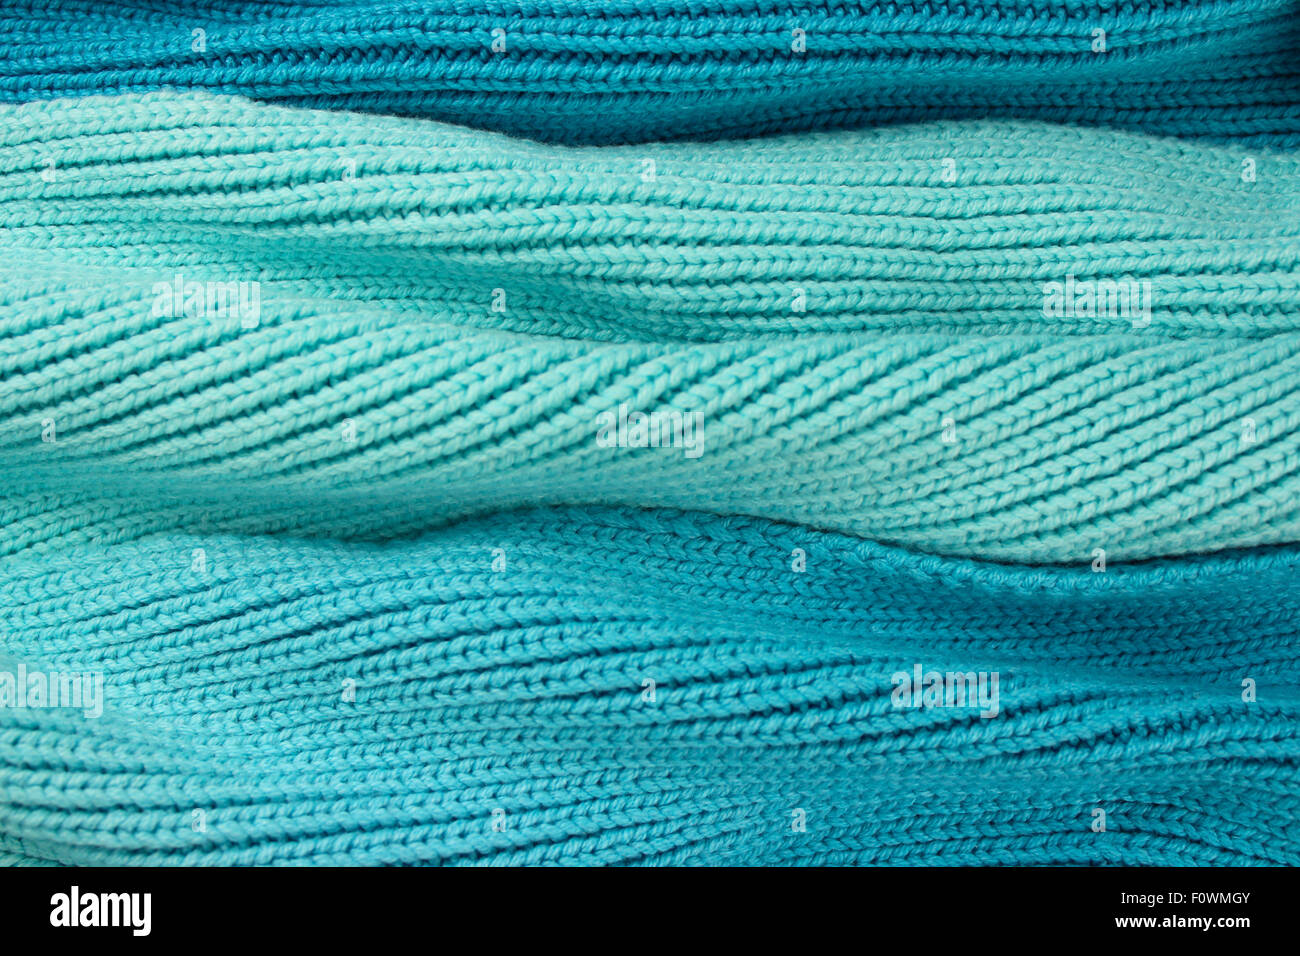 Turquoise wool wave effect background. - Stock Image